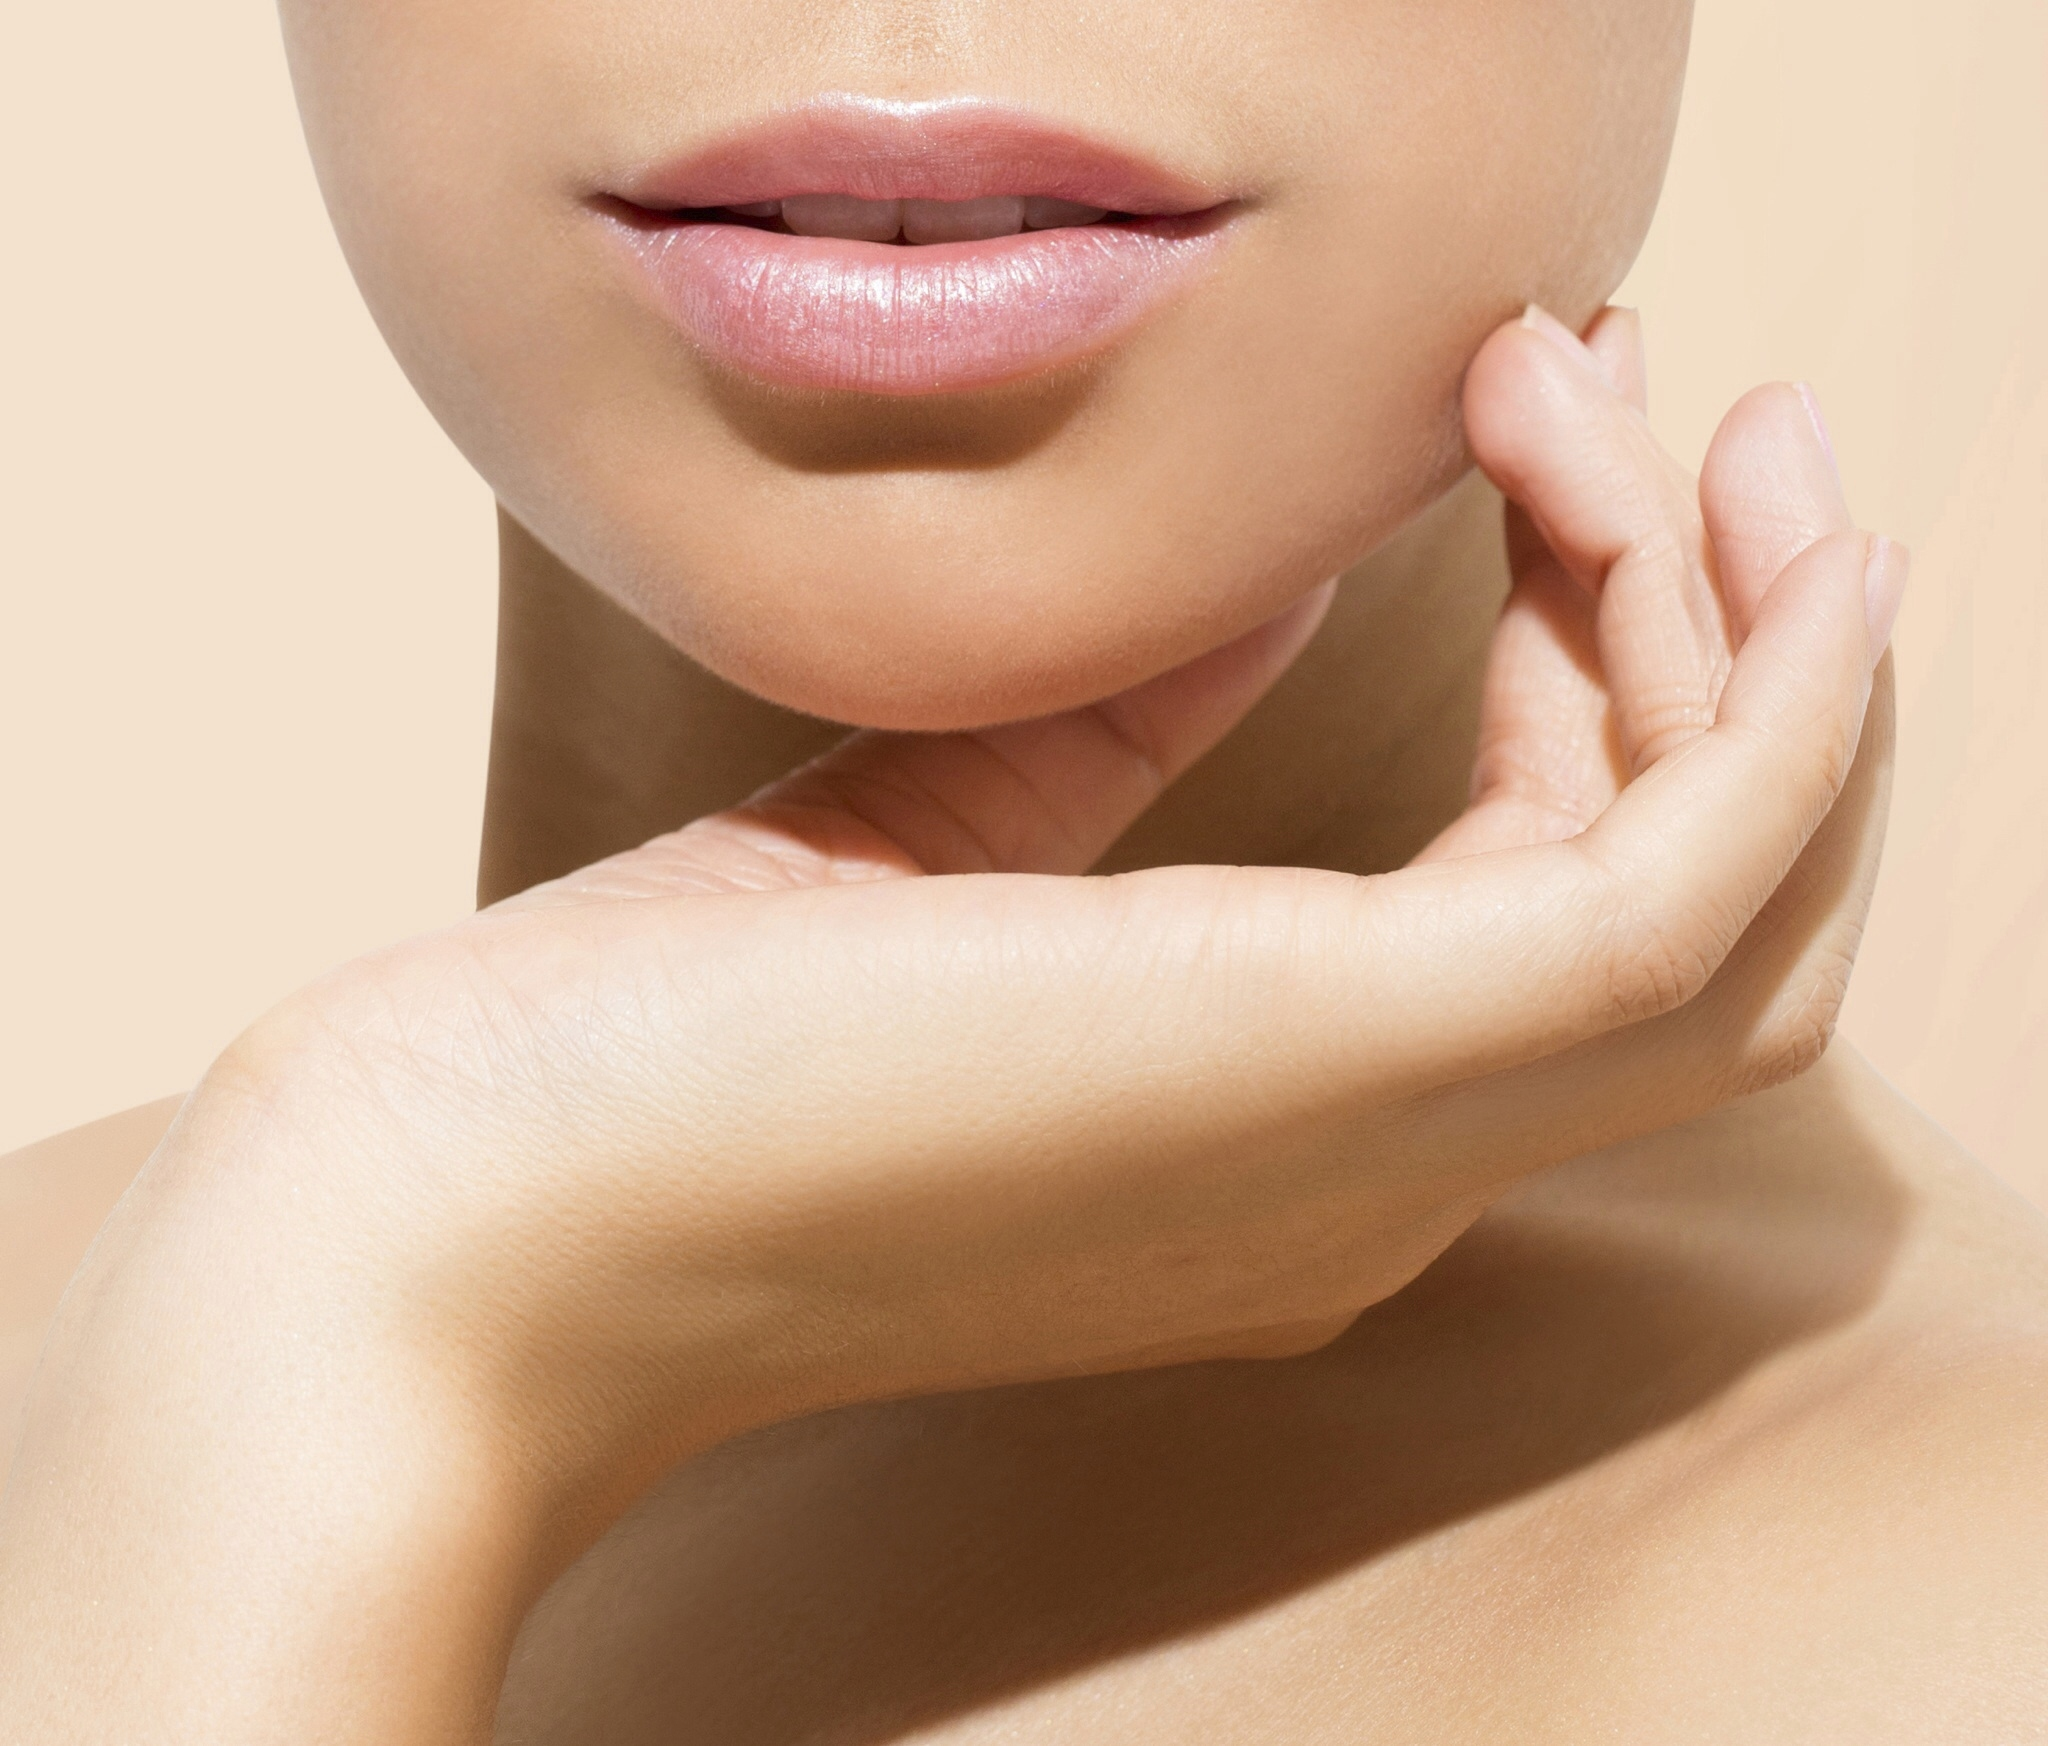 How to Heal Chapped Lips Without ChapStick | LEAFtv